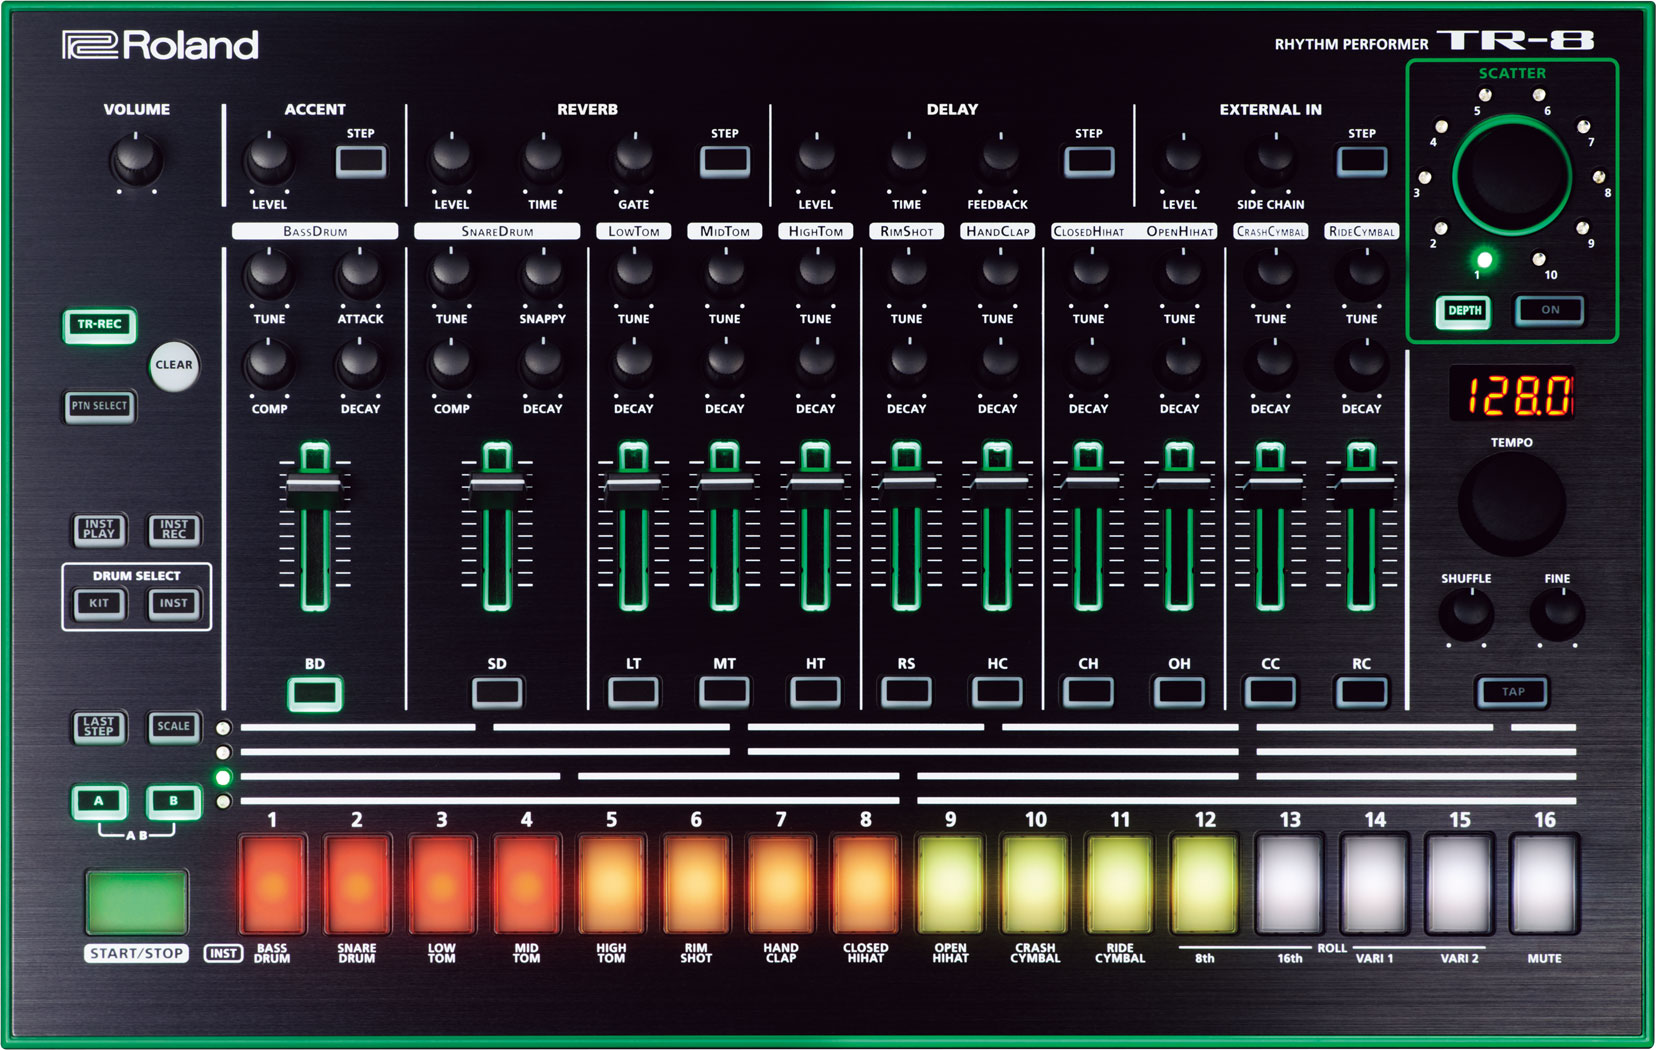 https://static.roland.com/assets/images/products/gallery/tr-8_top_gal.jpg